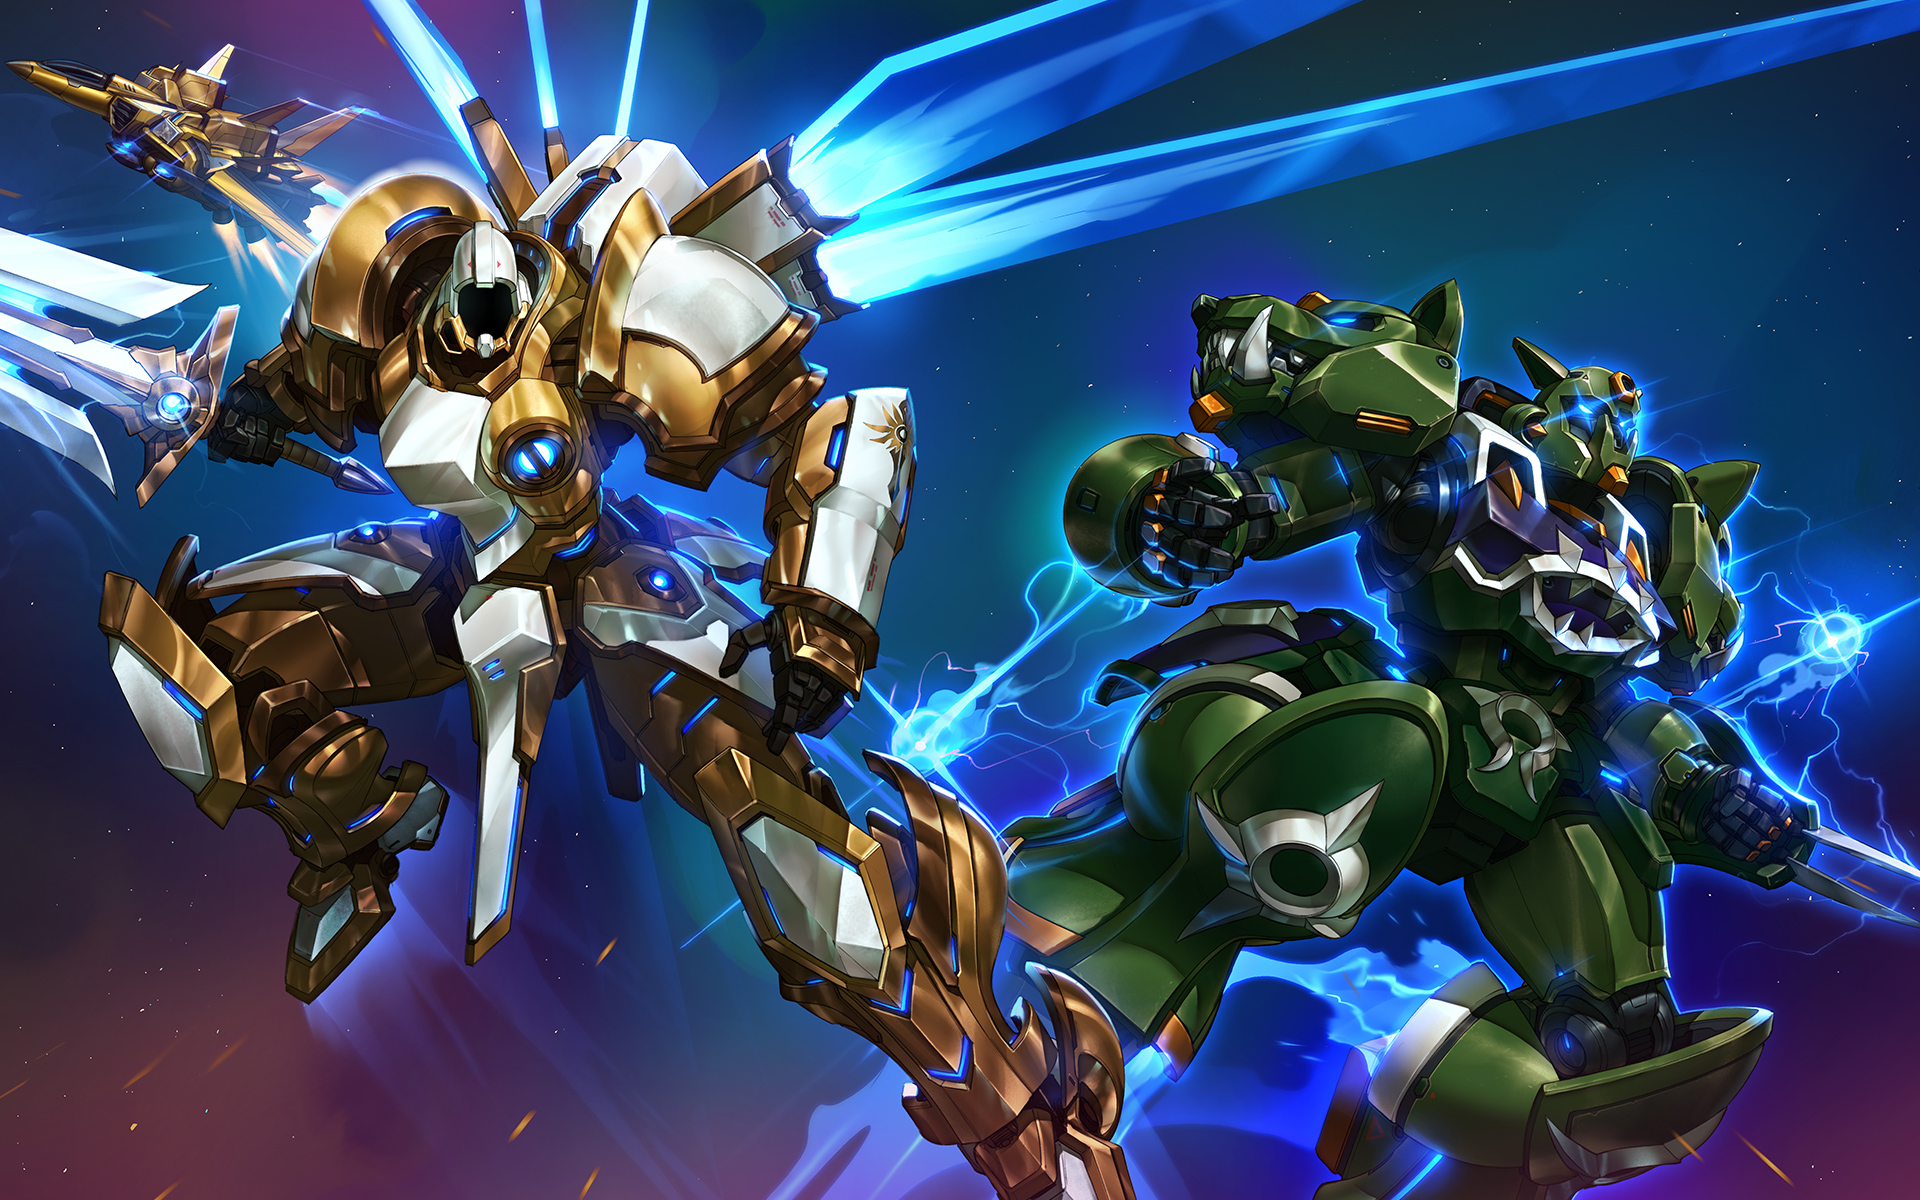 Heroes Of The Storm Wallpaper 002 Wallpapers Ethereal Games